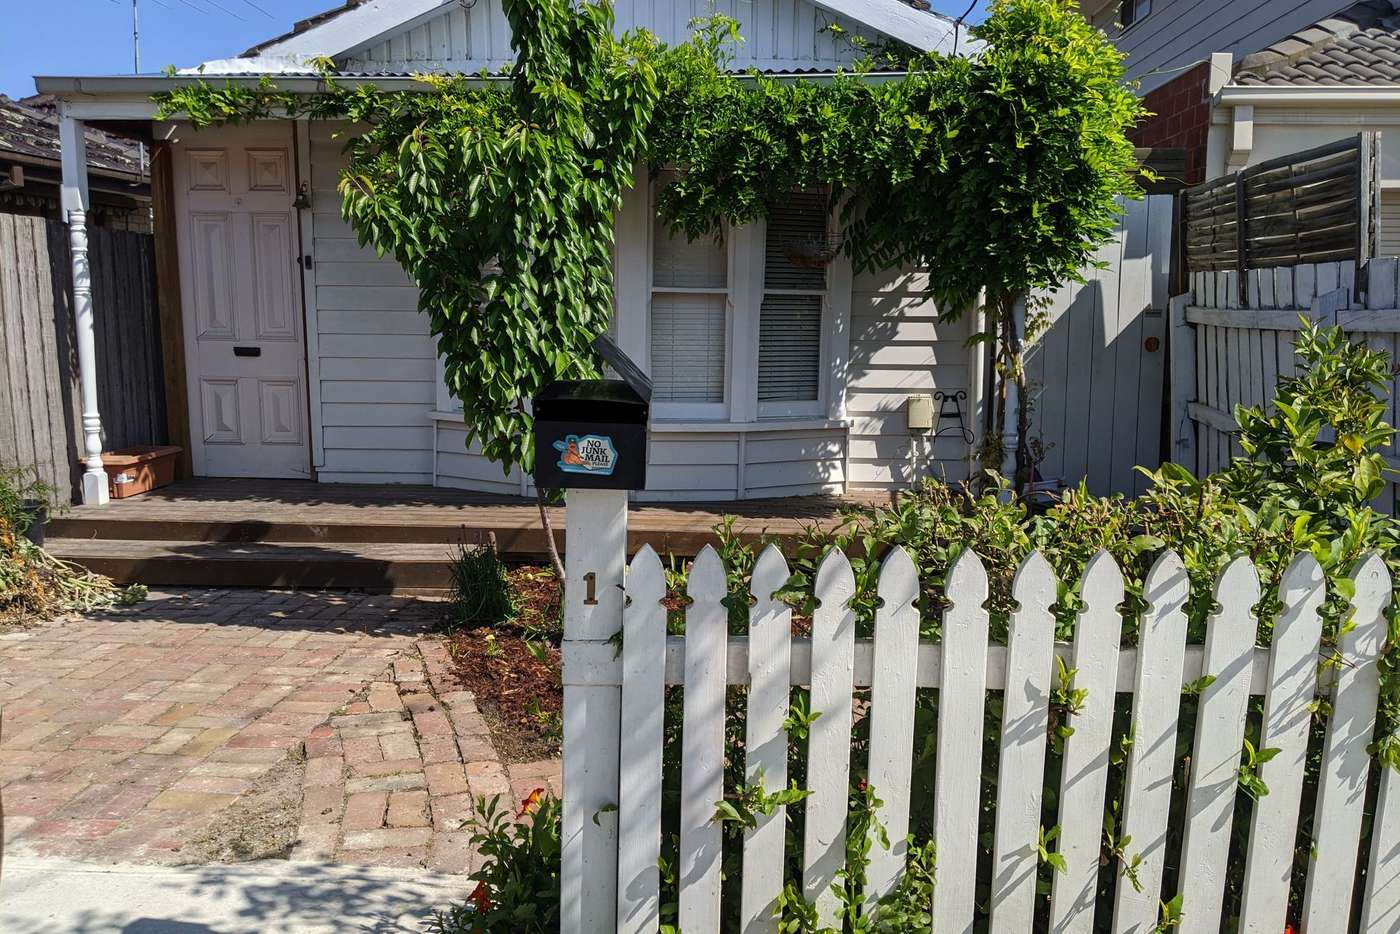 Main view of Homely house listing, 1 Dyson Street, West Footscray VIC 3012